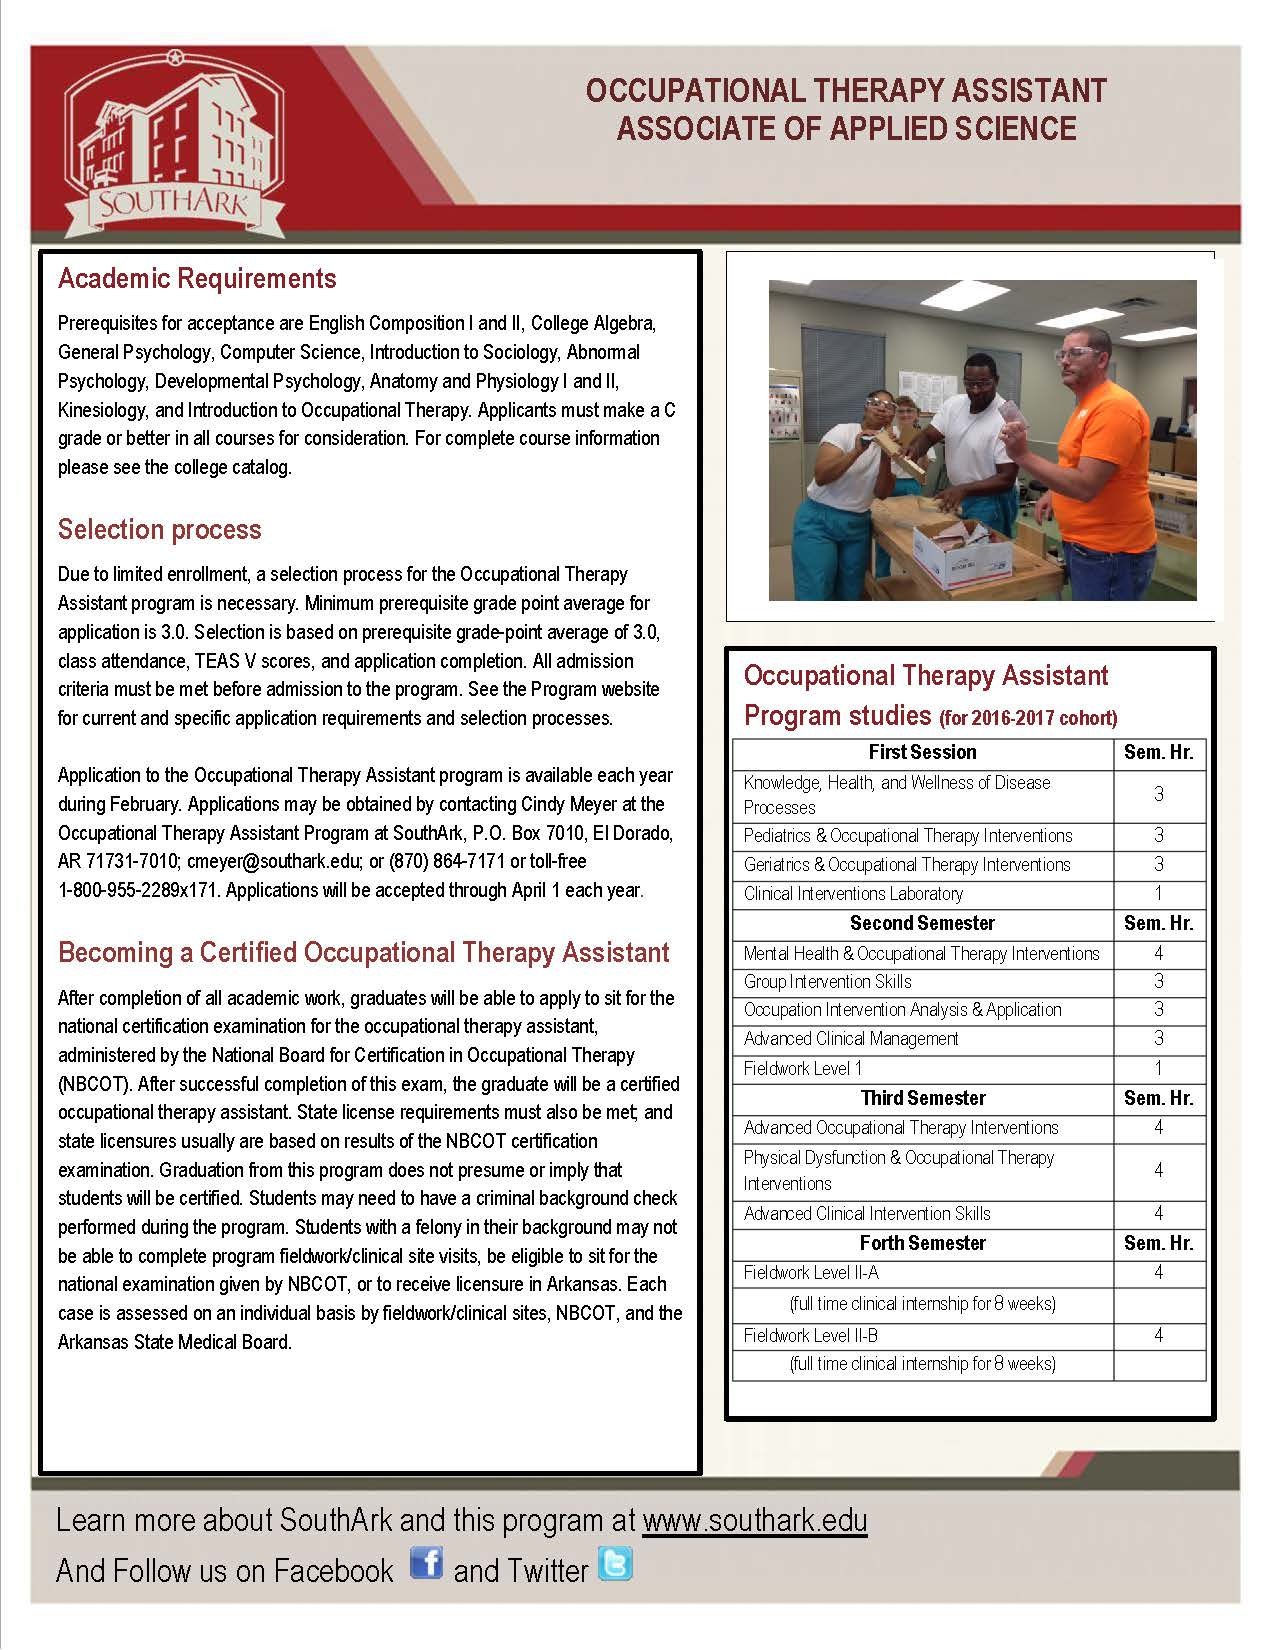 Occupational Therapy Assistant Montgomery County Community College Academic Calendar Diagram You Download The Ota Brochure